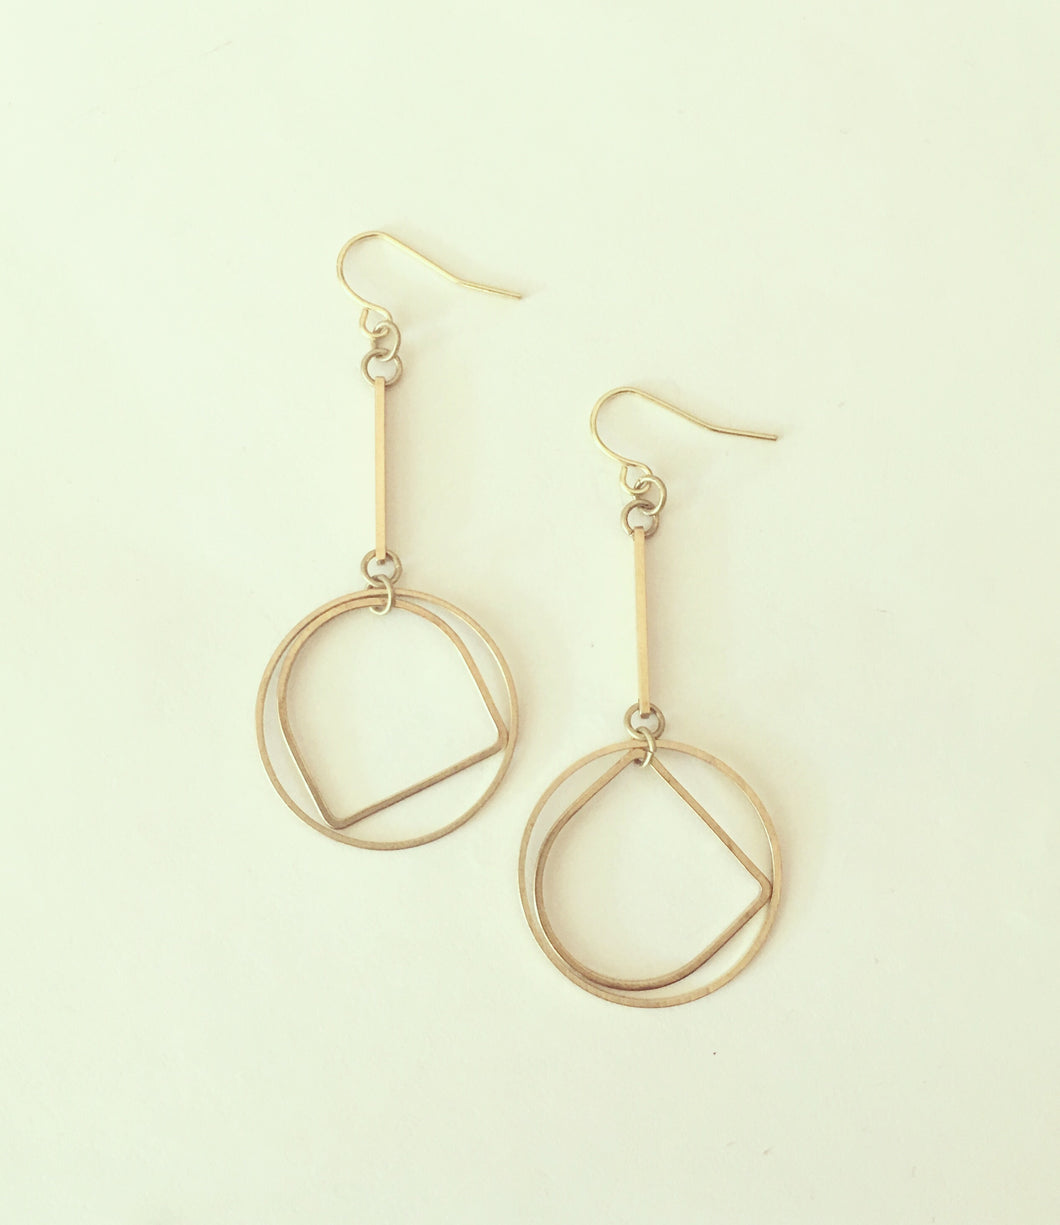 The Juupe Earrings